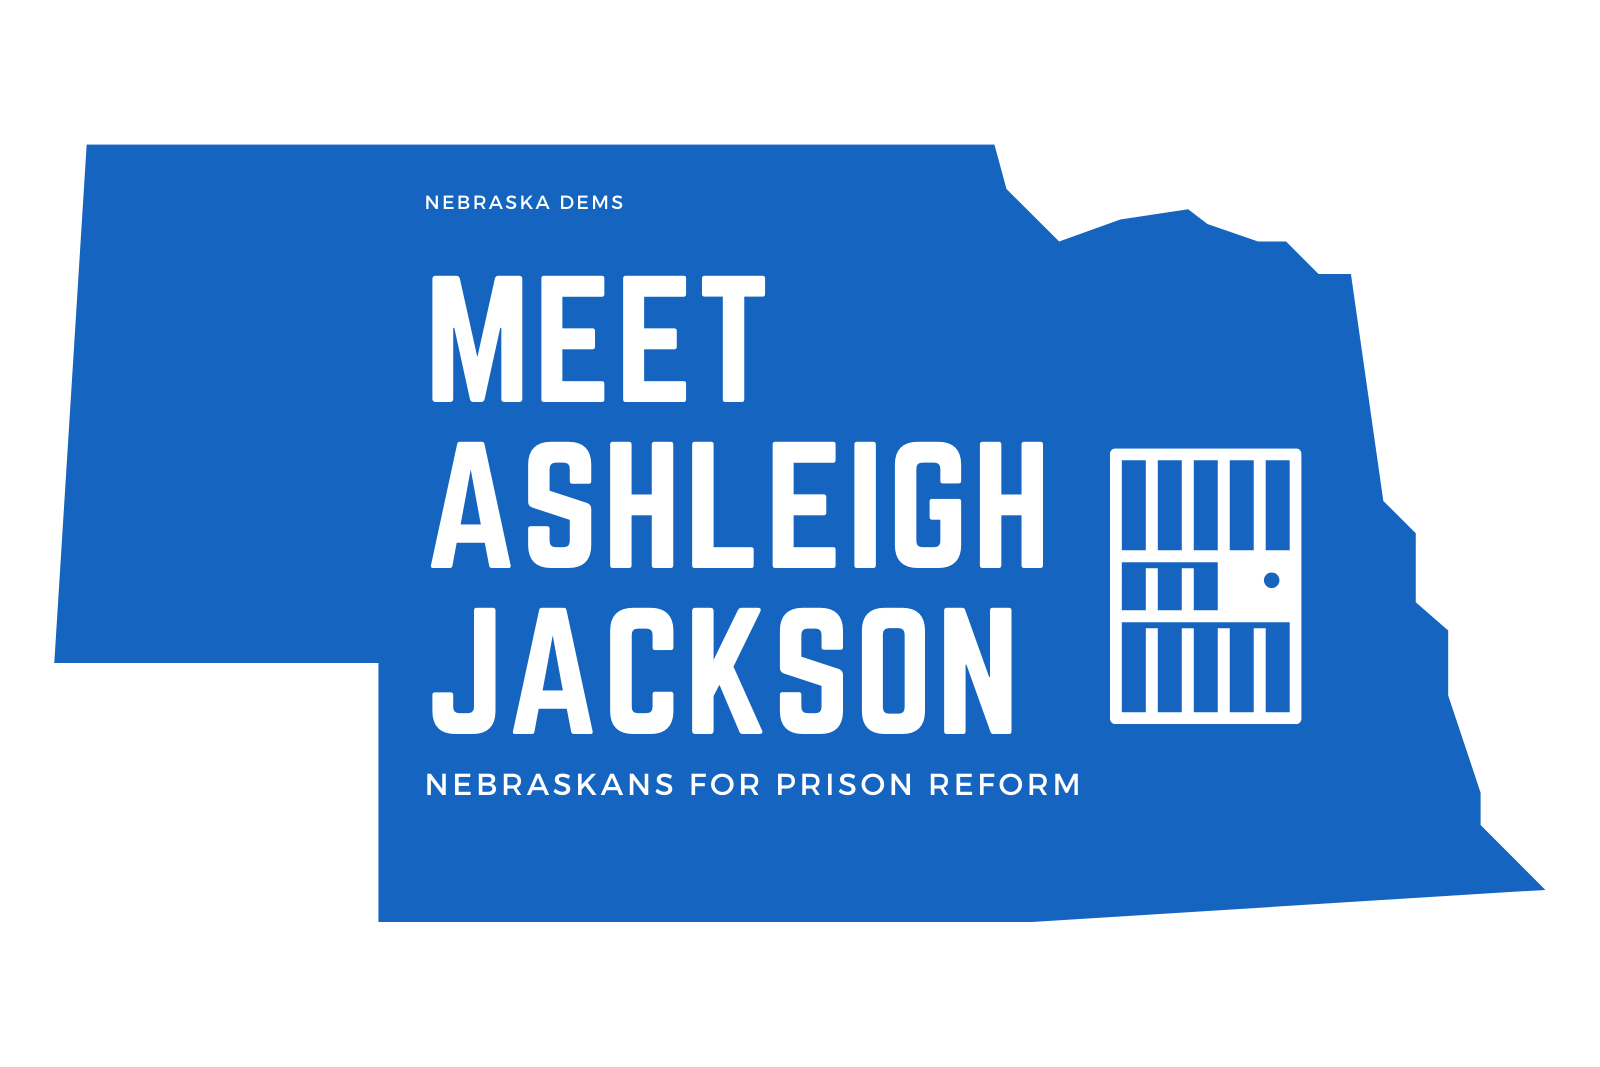 Nebraskans for Prison Reform with Ashleigh Jackson